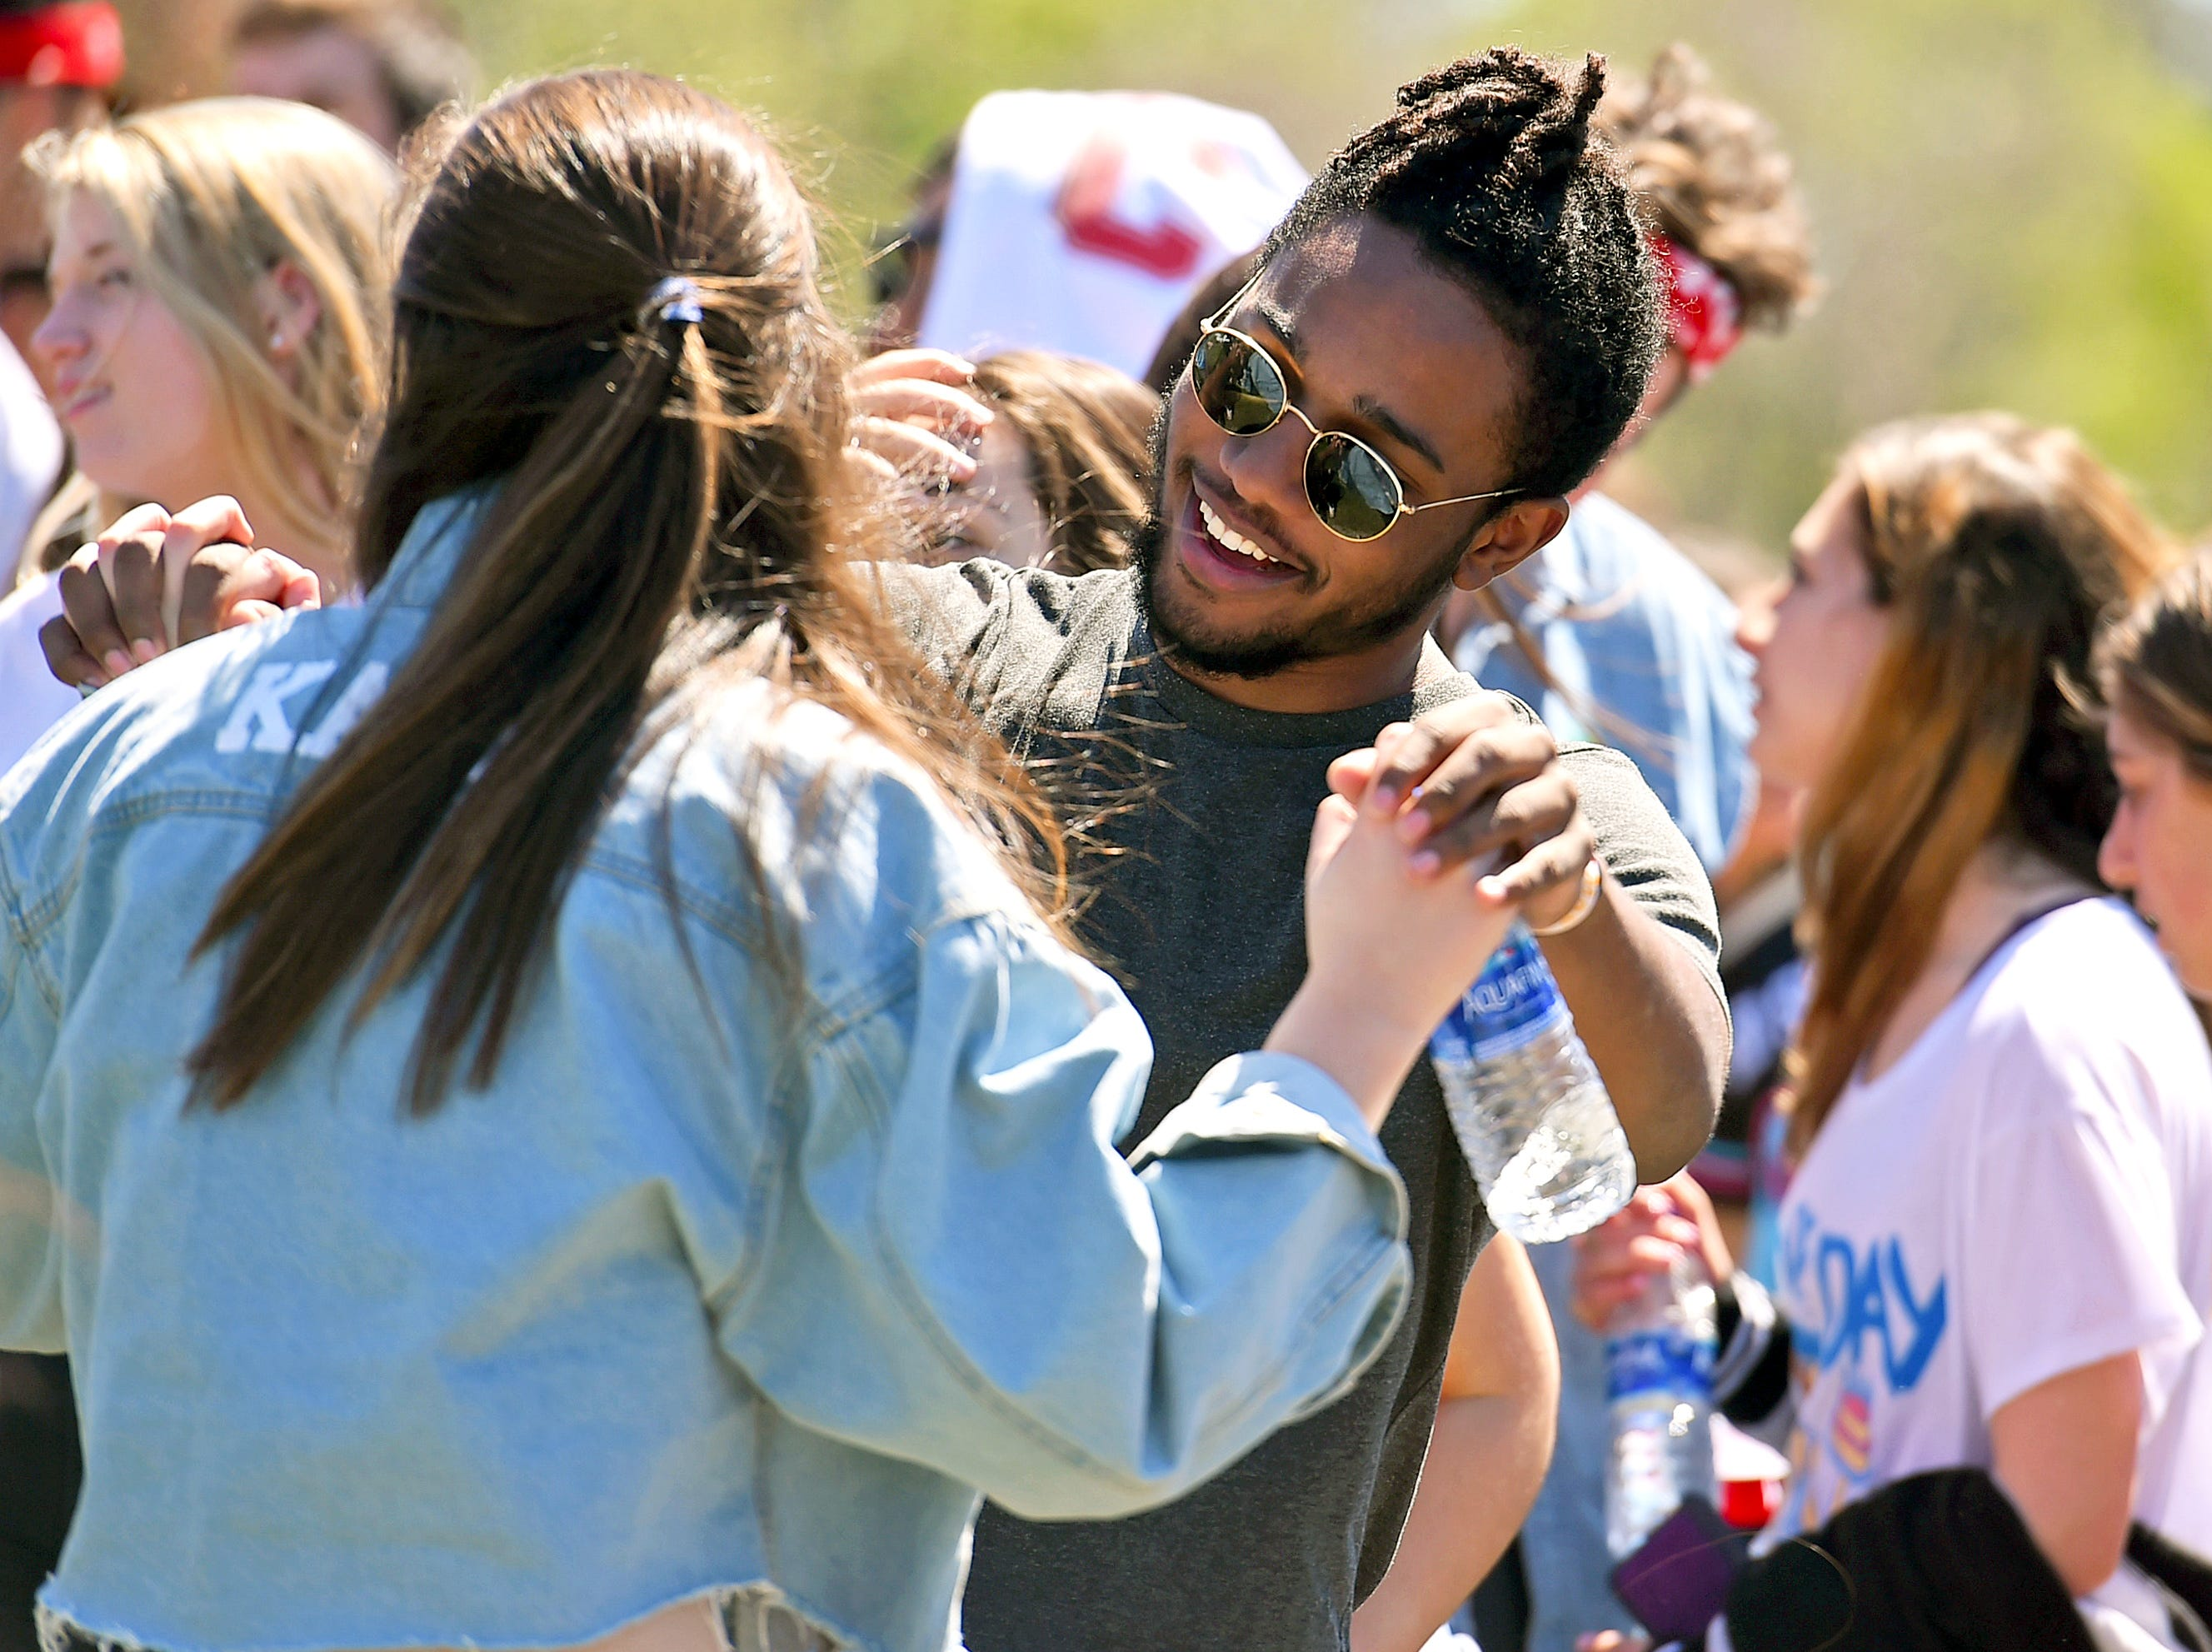 Slope Day 2019 at Cornell University featured music by Steve Aoki, Cousin Stizz, and EZI. May 8, 2019